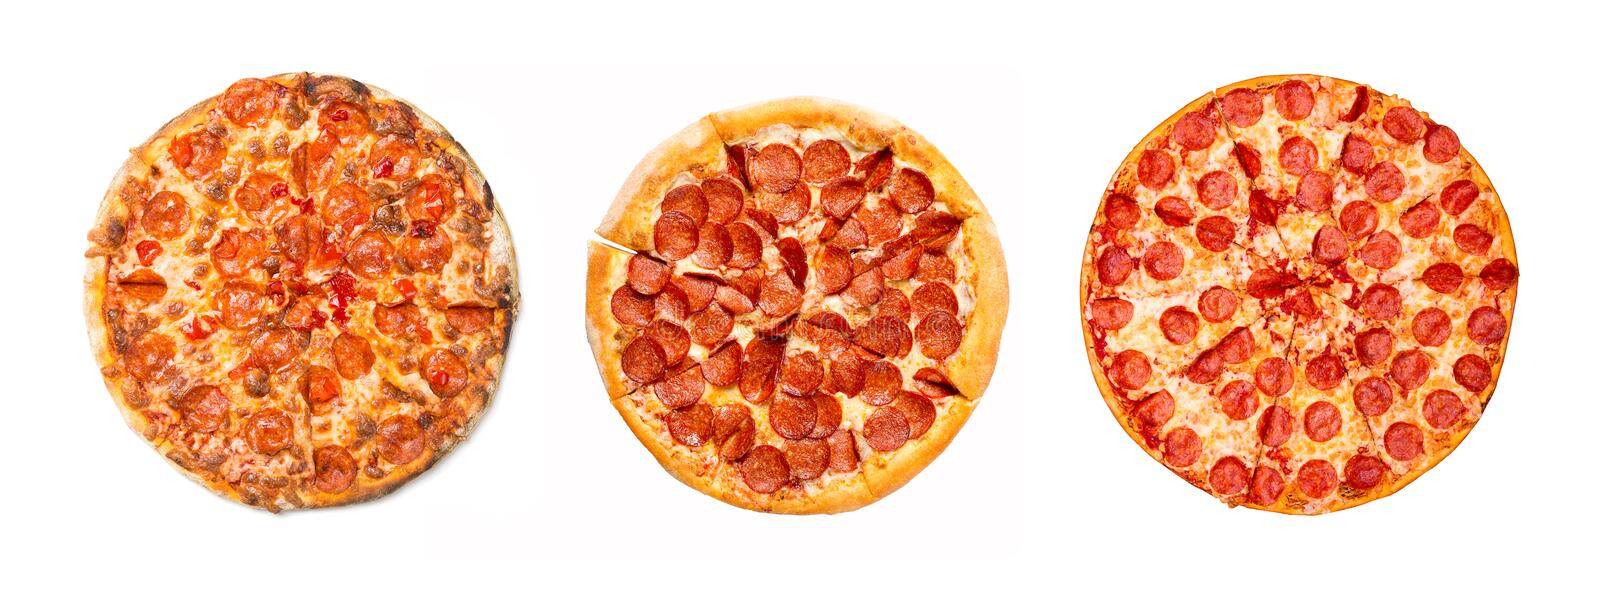 Fresh tasty pepperoni pizza group isolated on white background. Top view.  royalty free stock photos